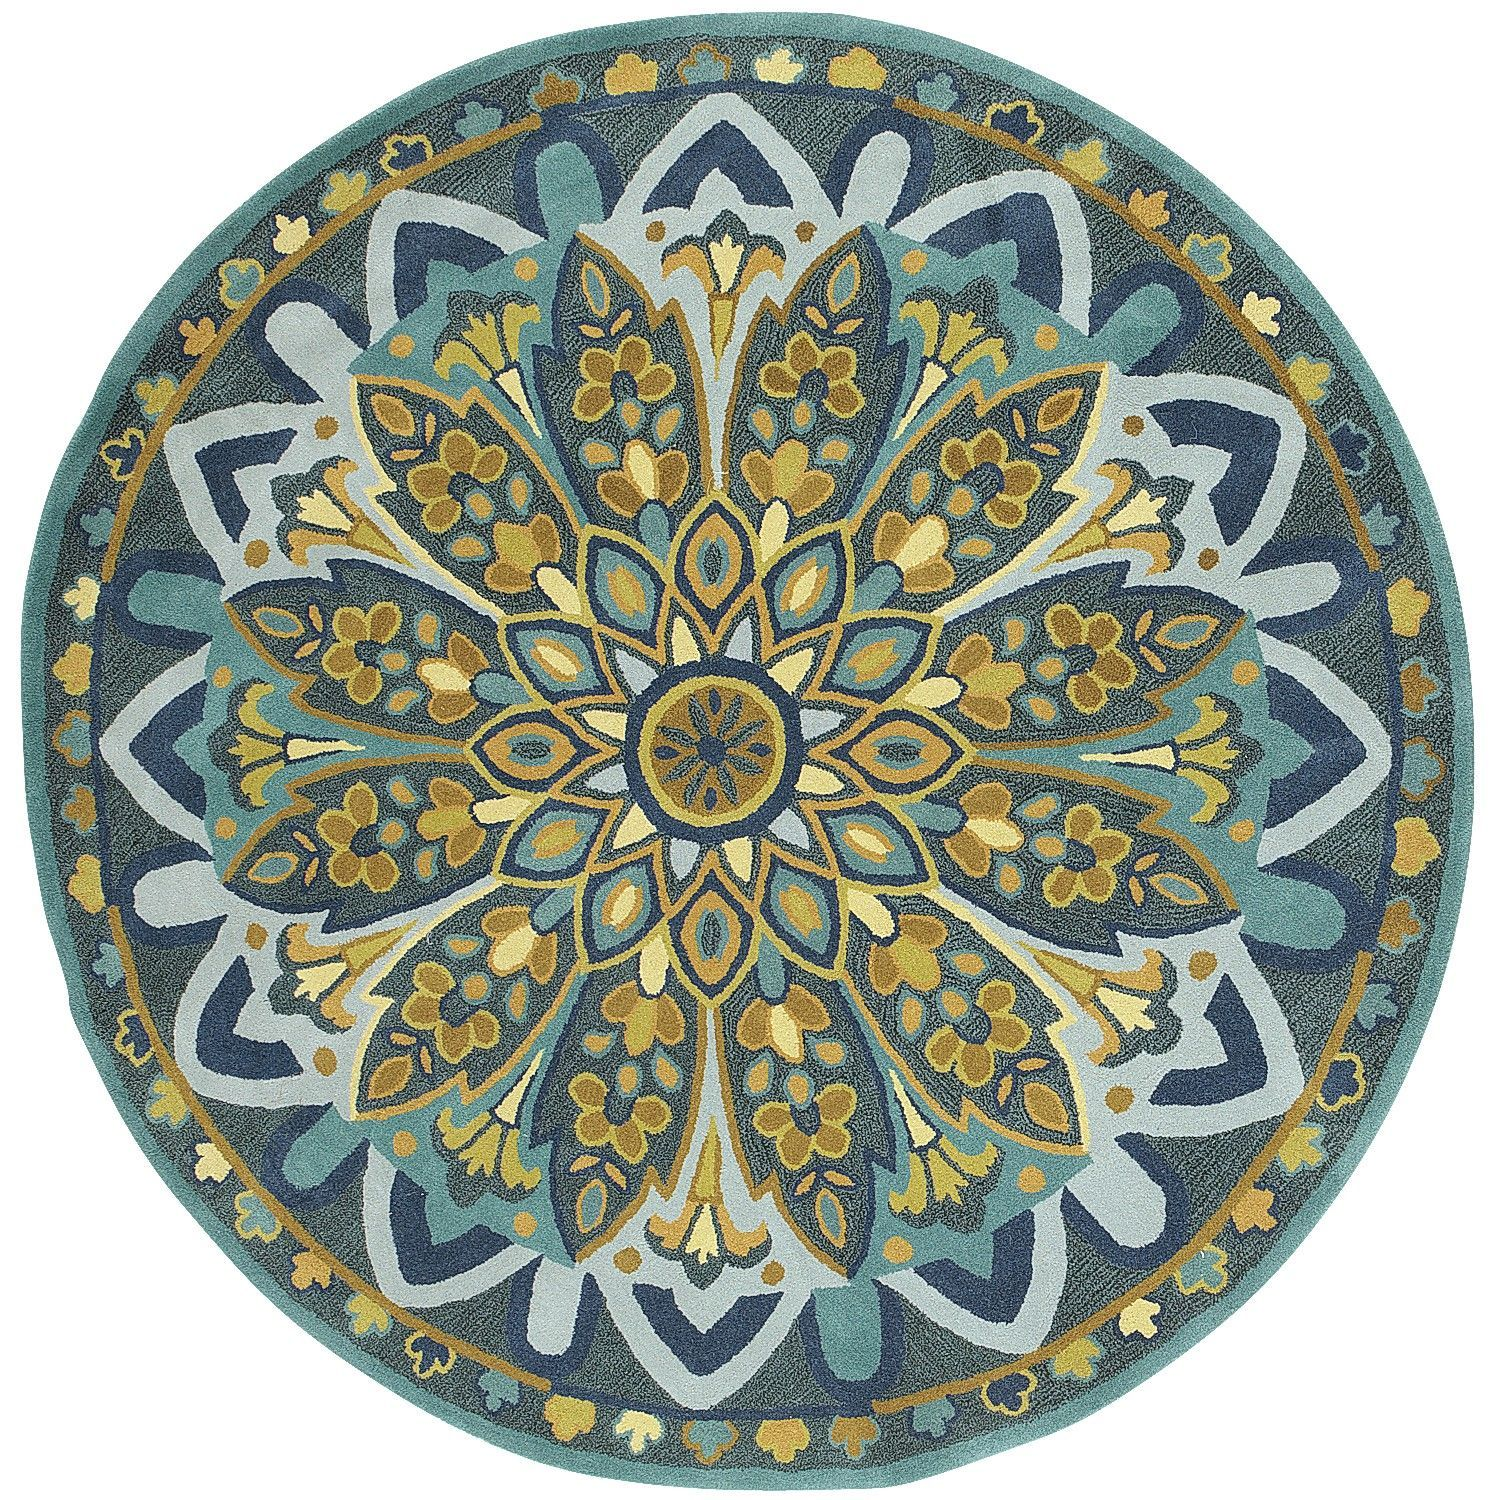 pier 1 living room rugs%0A Another more colorful round rug   Pier    Amla Floral Round Rug